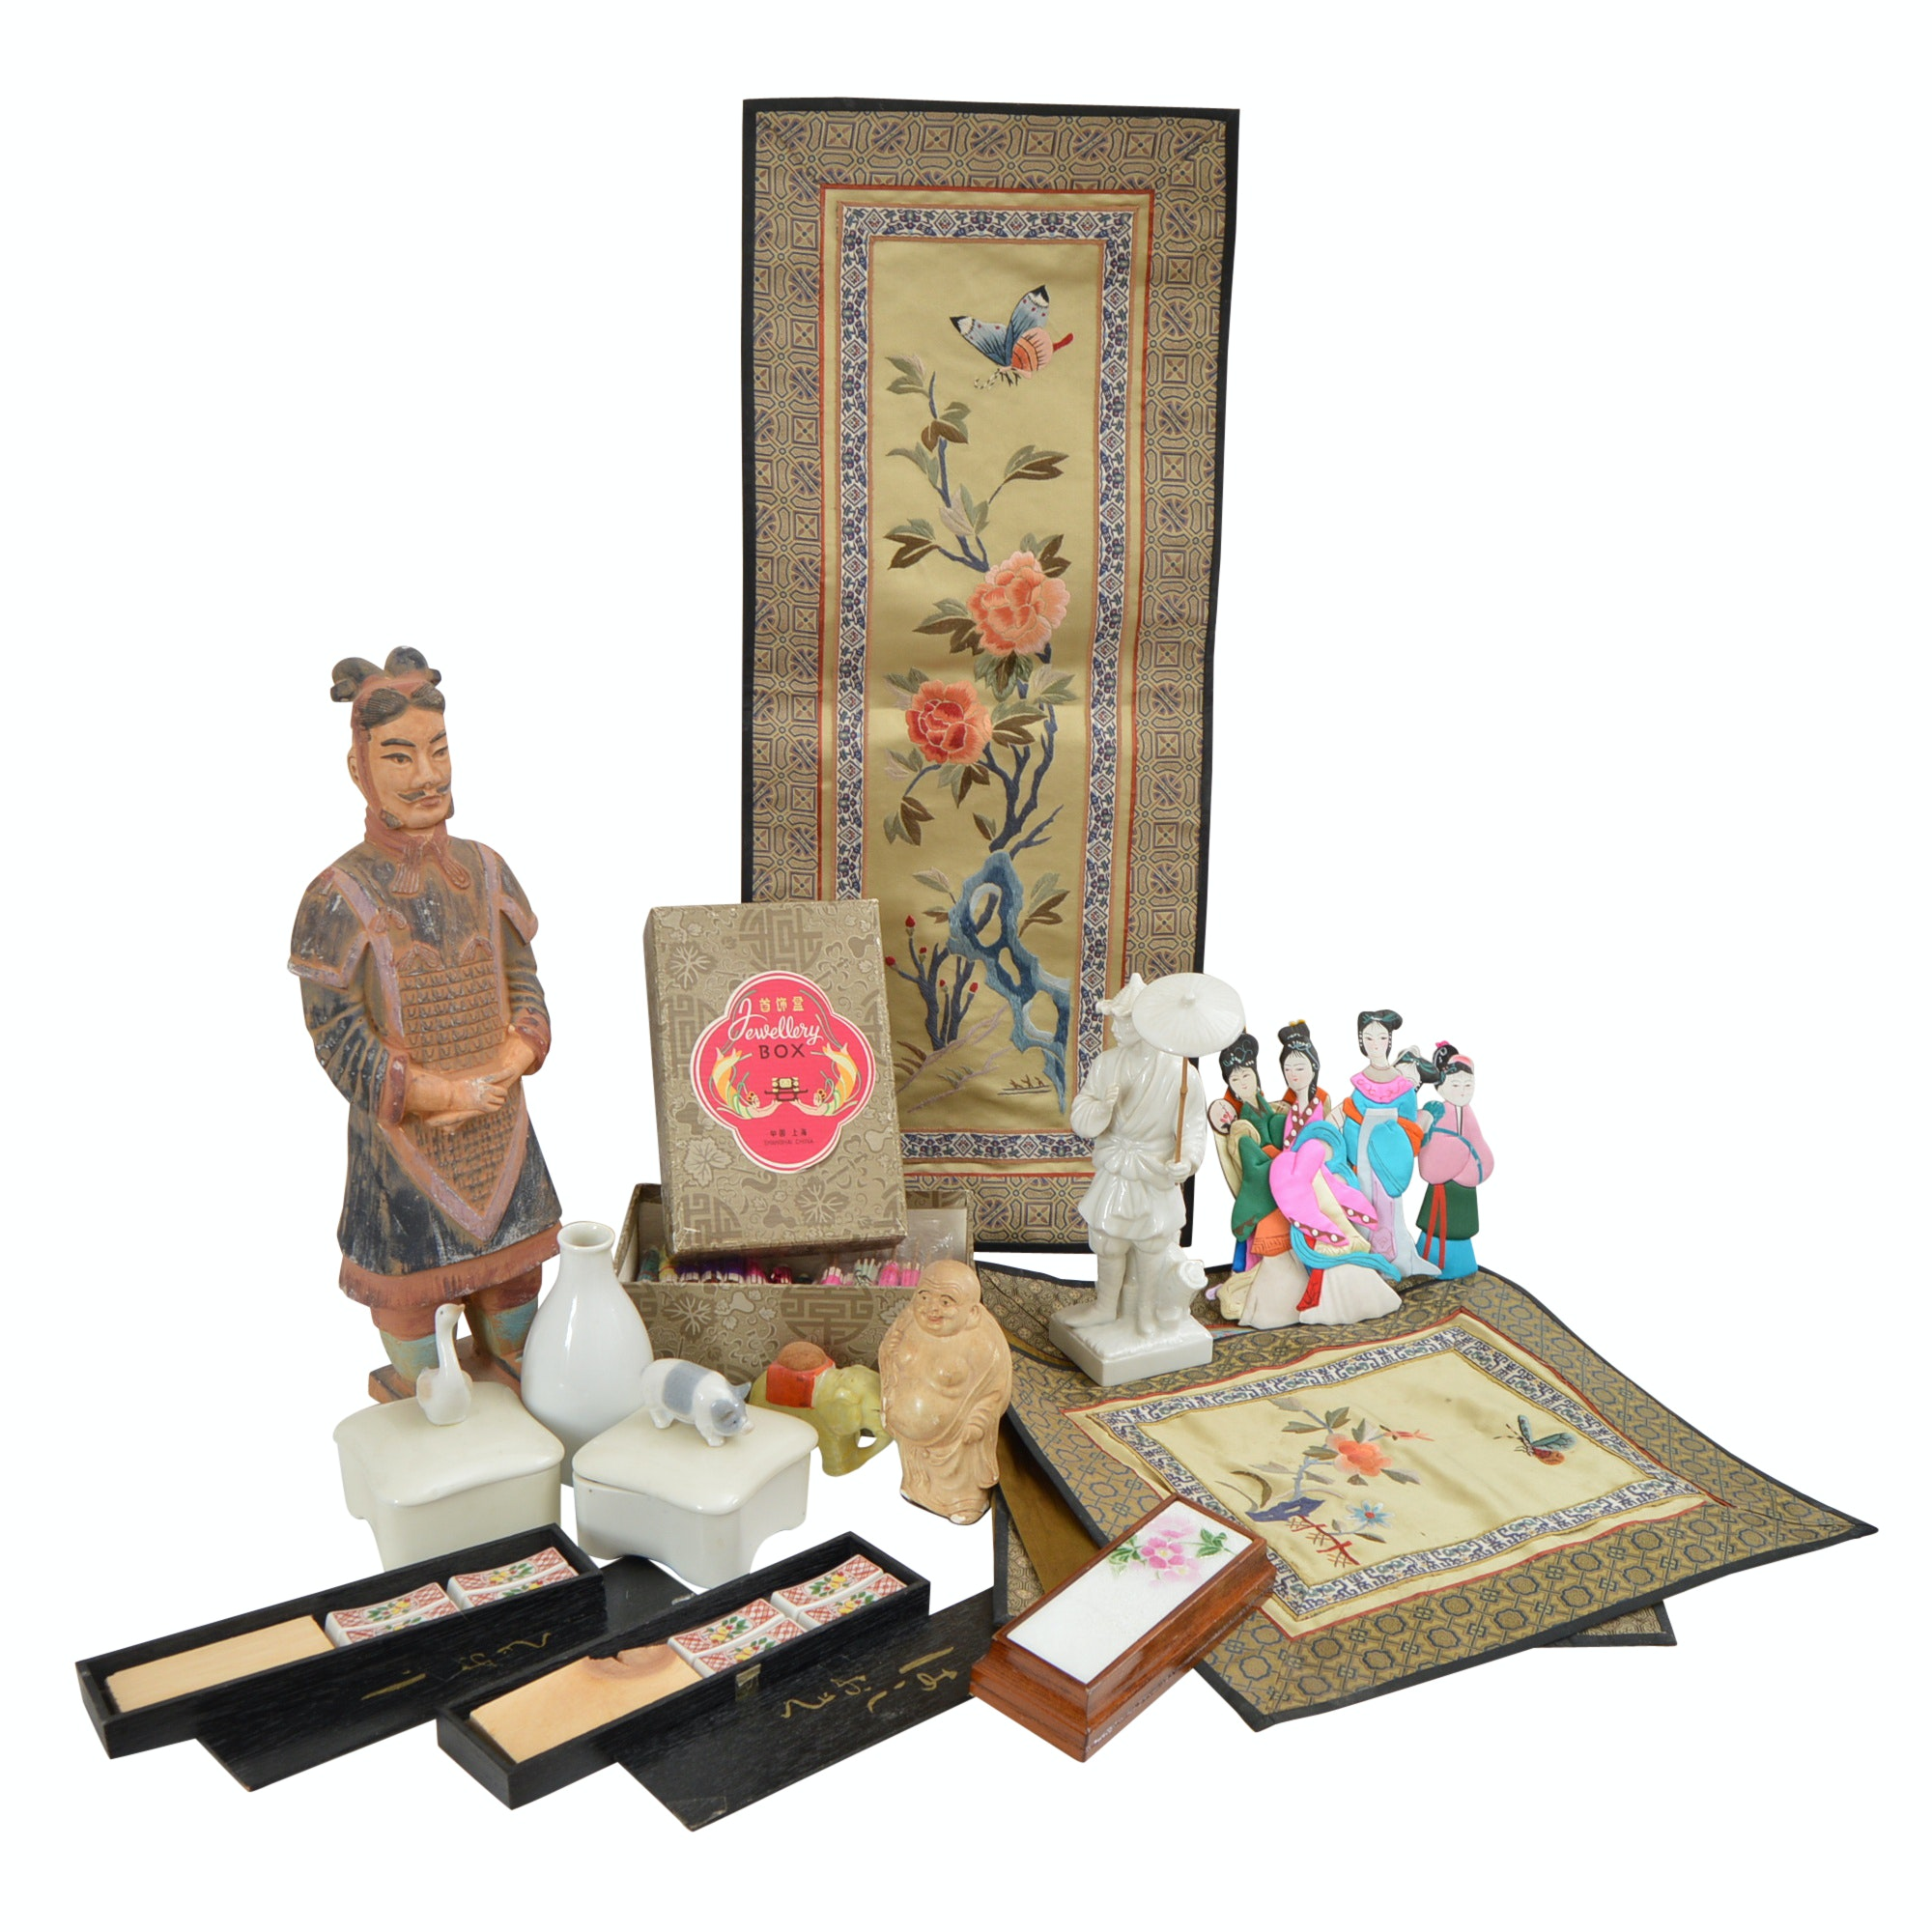 Vintage Asian Textiles and Collectibles